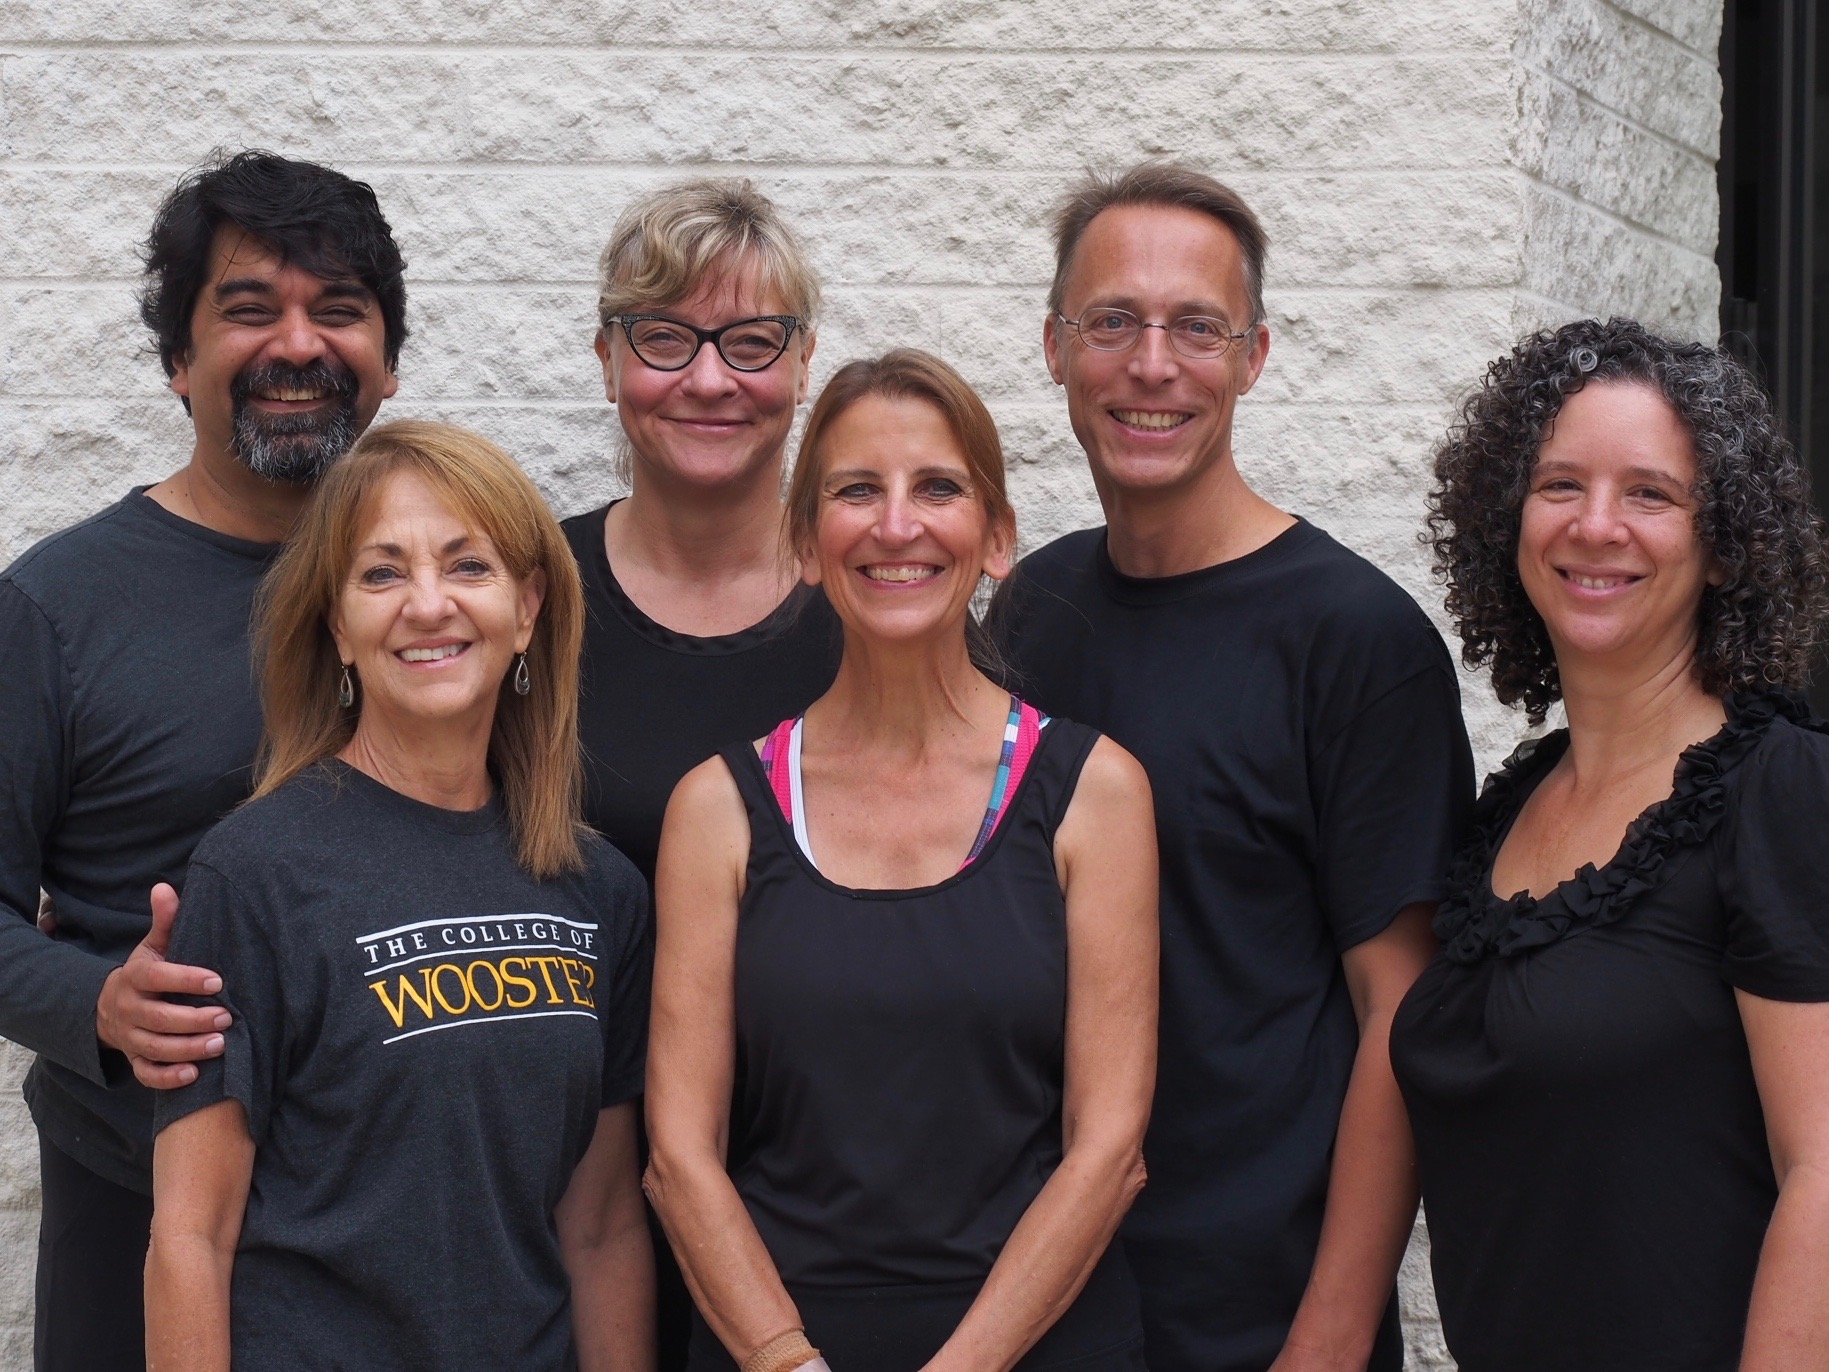 An interdisciplinary team of Wooster faculty participated in the experience